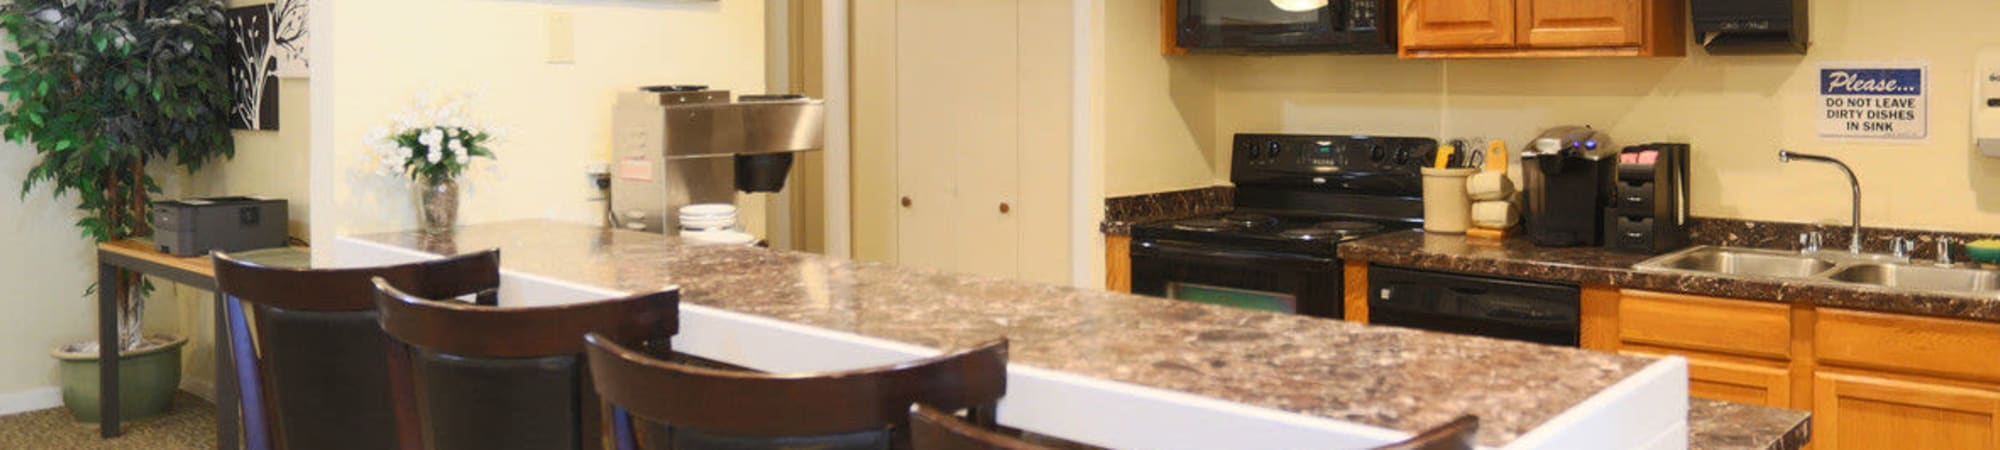 Apartments with private patio amenities at oakbrook - 2 bedroom apartments vancouver wa ...